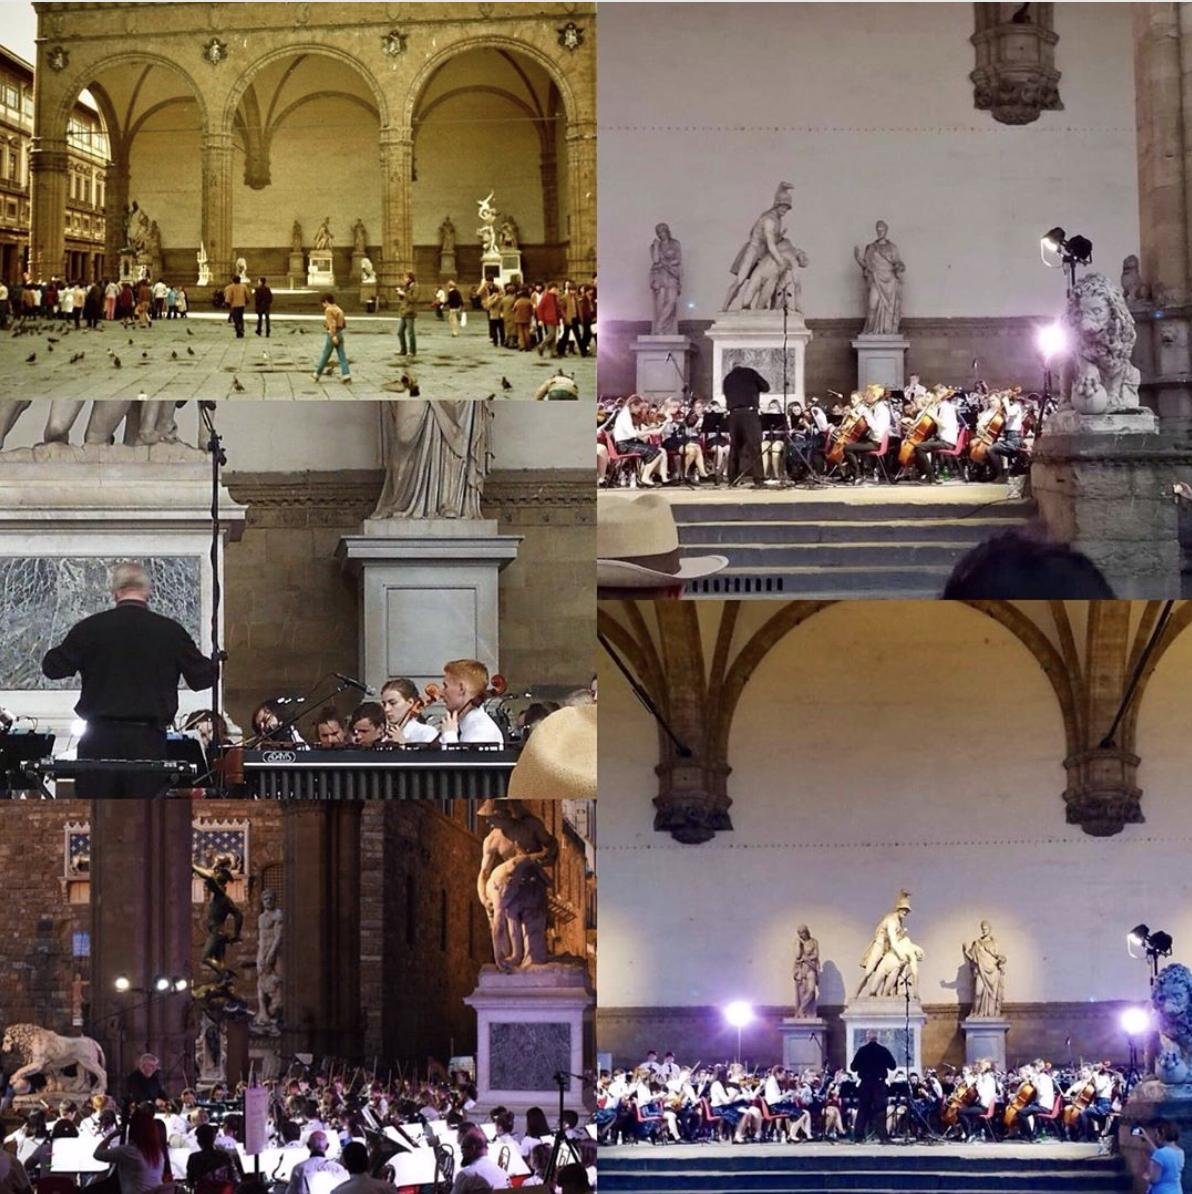 """Thanks #paul_bowtle who said,  """"One of the proudest moments of my life, Catherine playing for PYO in Florence 40 years since I first stood in that square."""" #loggiadeilanzi @pyoperth #festivalorchestre https://t.co/AgRgcwYYgK"""